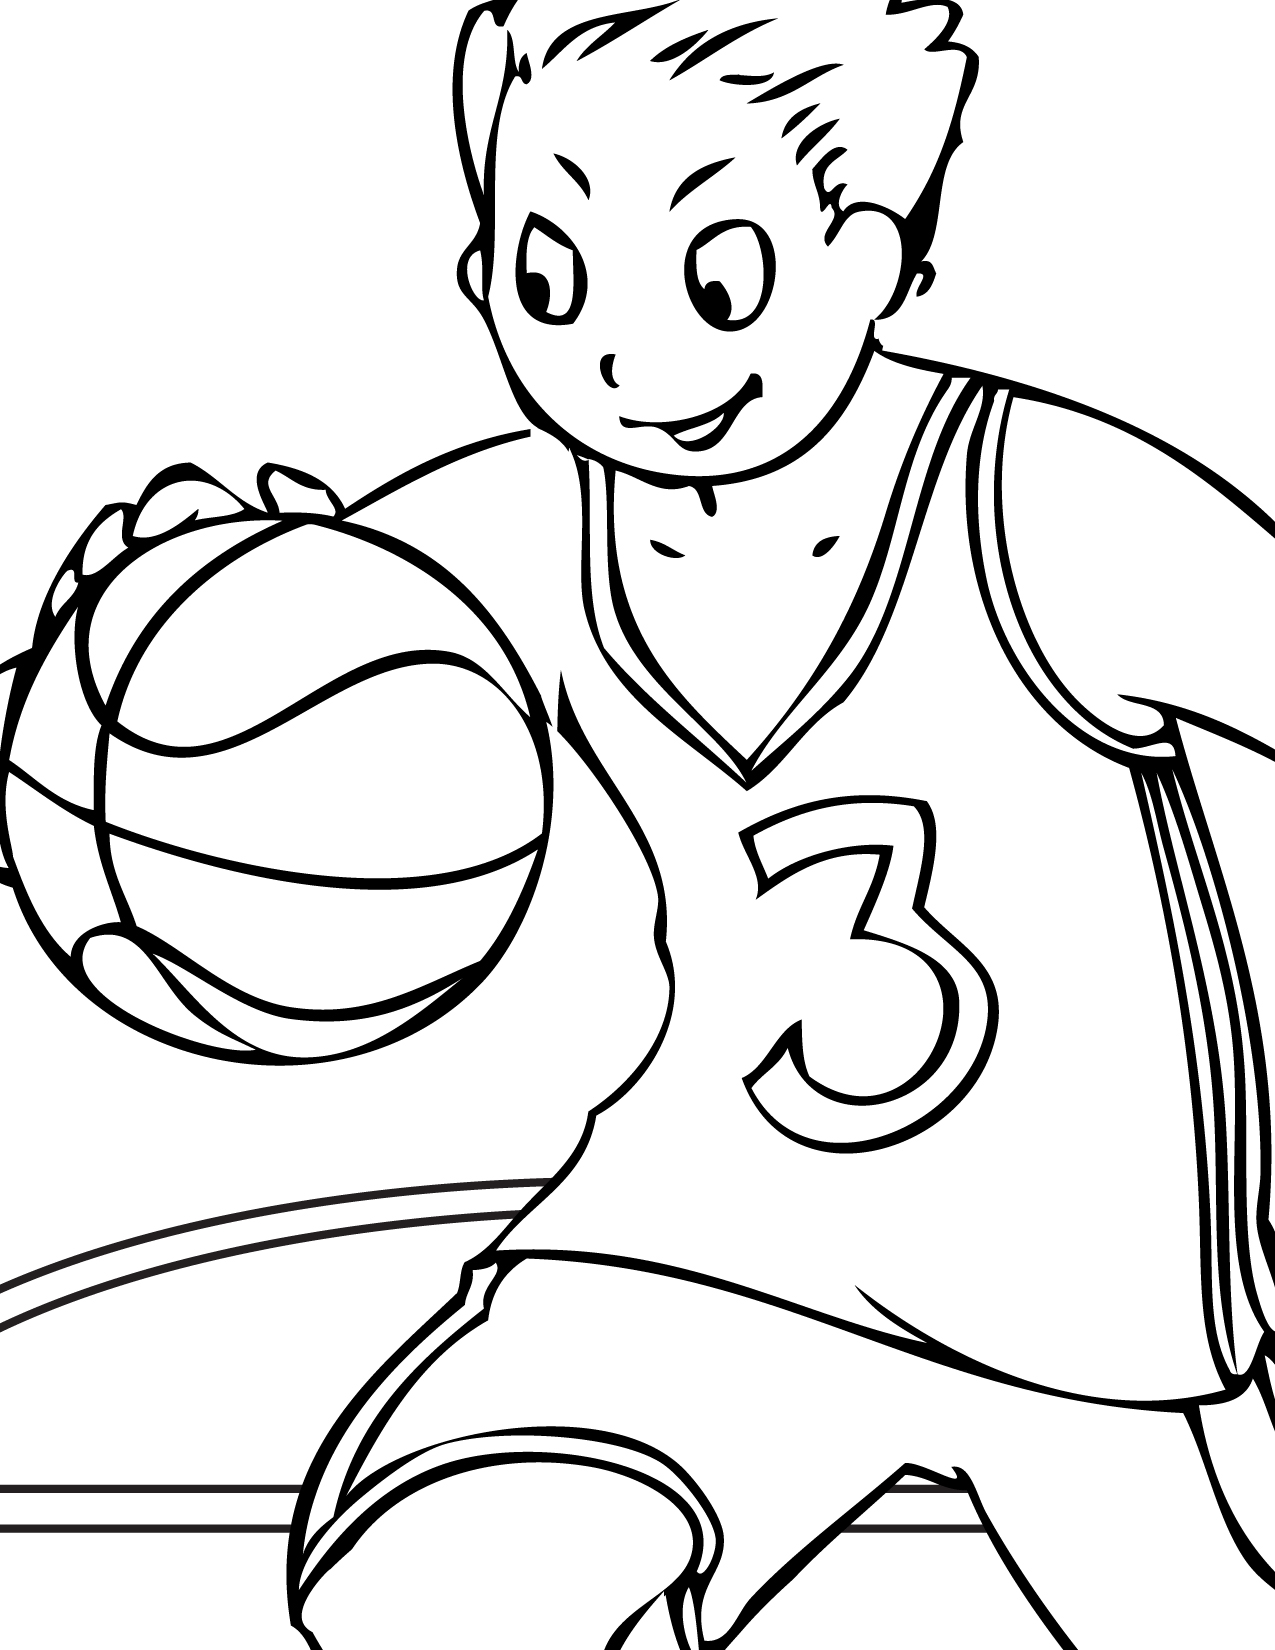 Printable Basketball Pictures